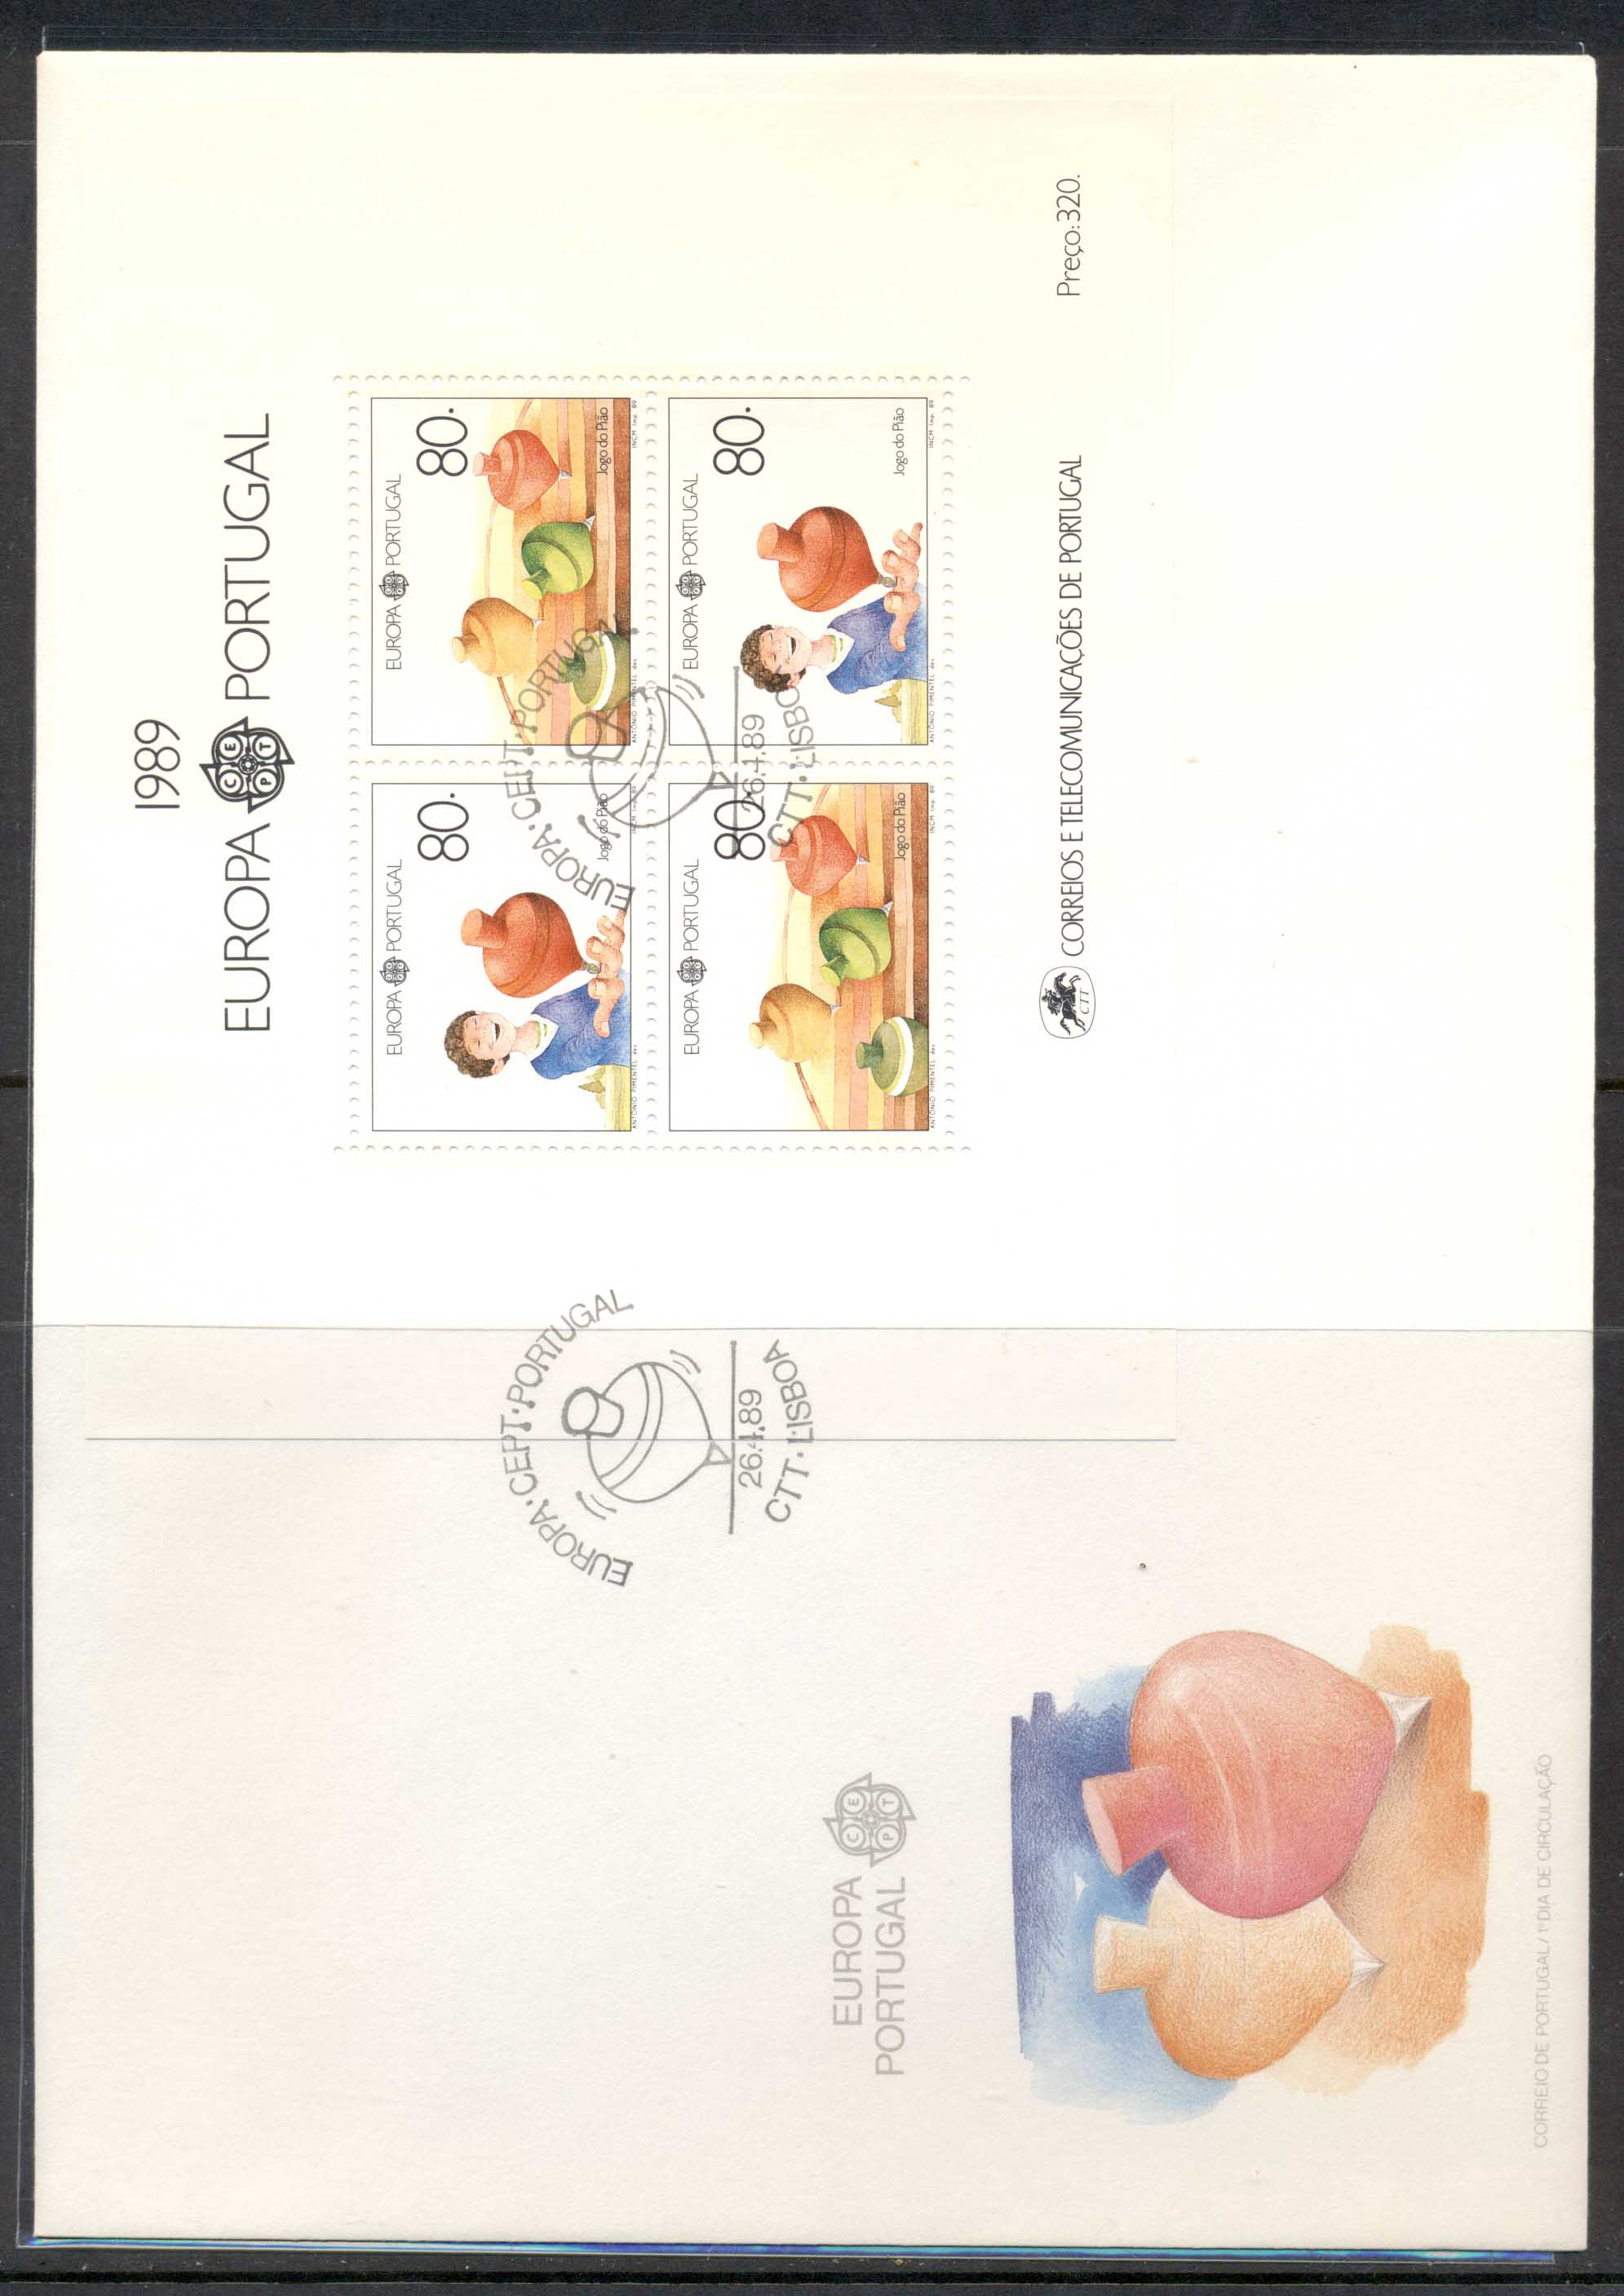 Portugal 1989 Europa Children's Play XLMS FDC